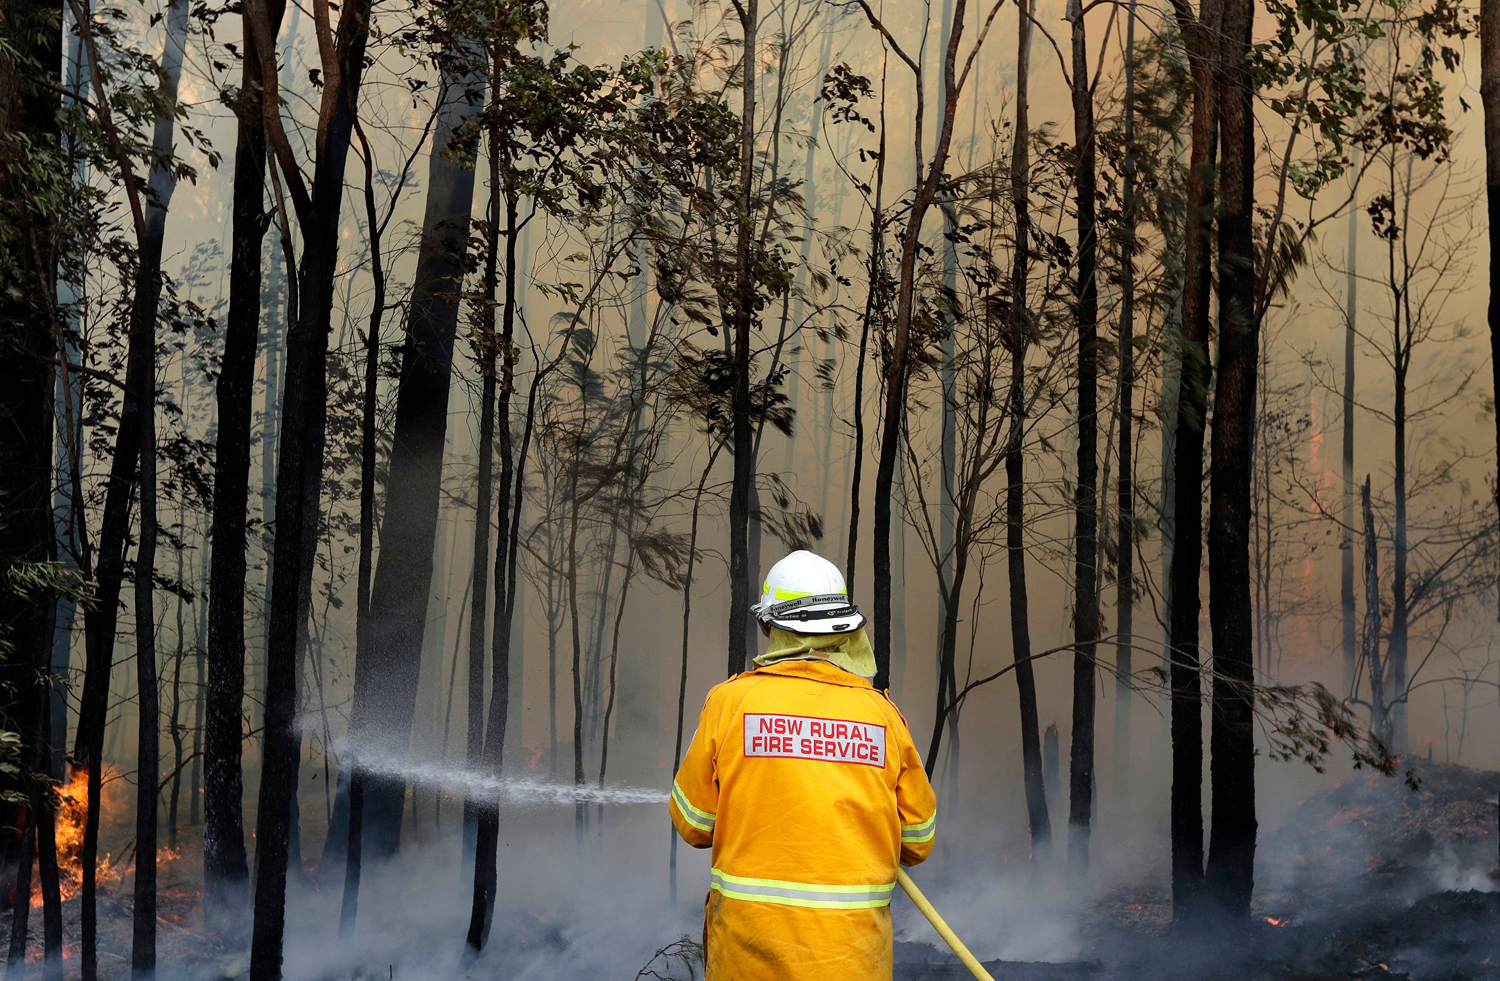 A firefighter manages a controlled burn near Tomerong, Australia